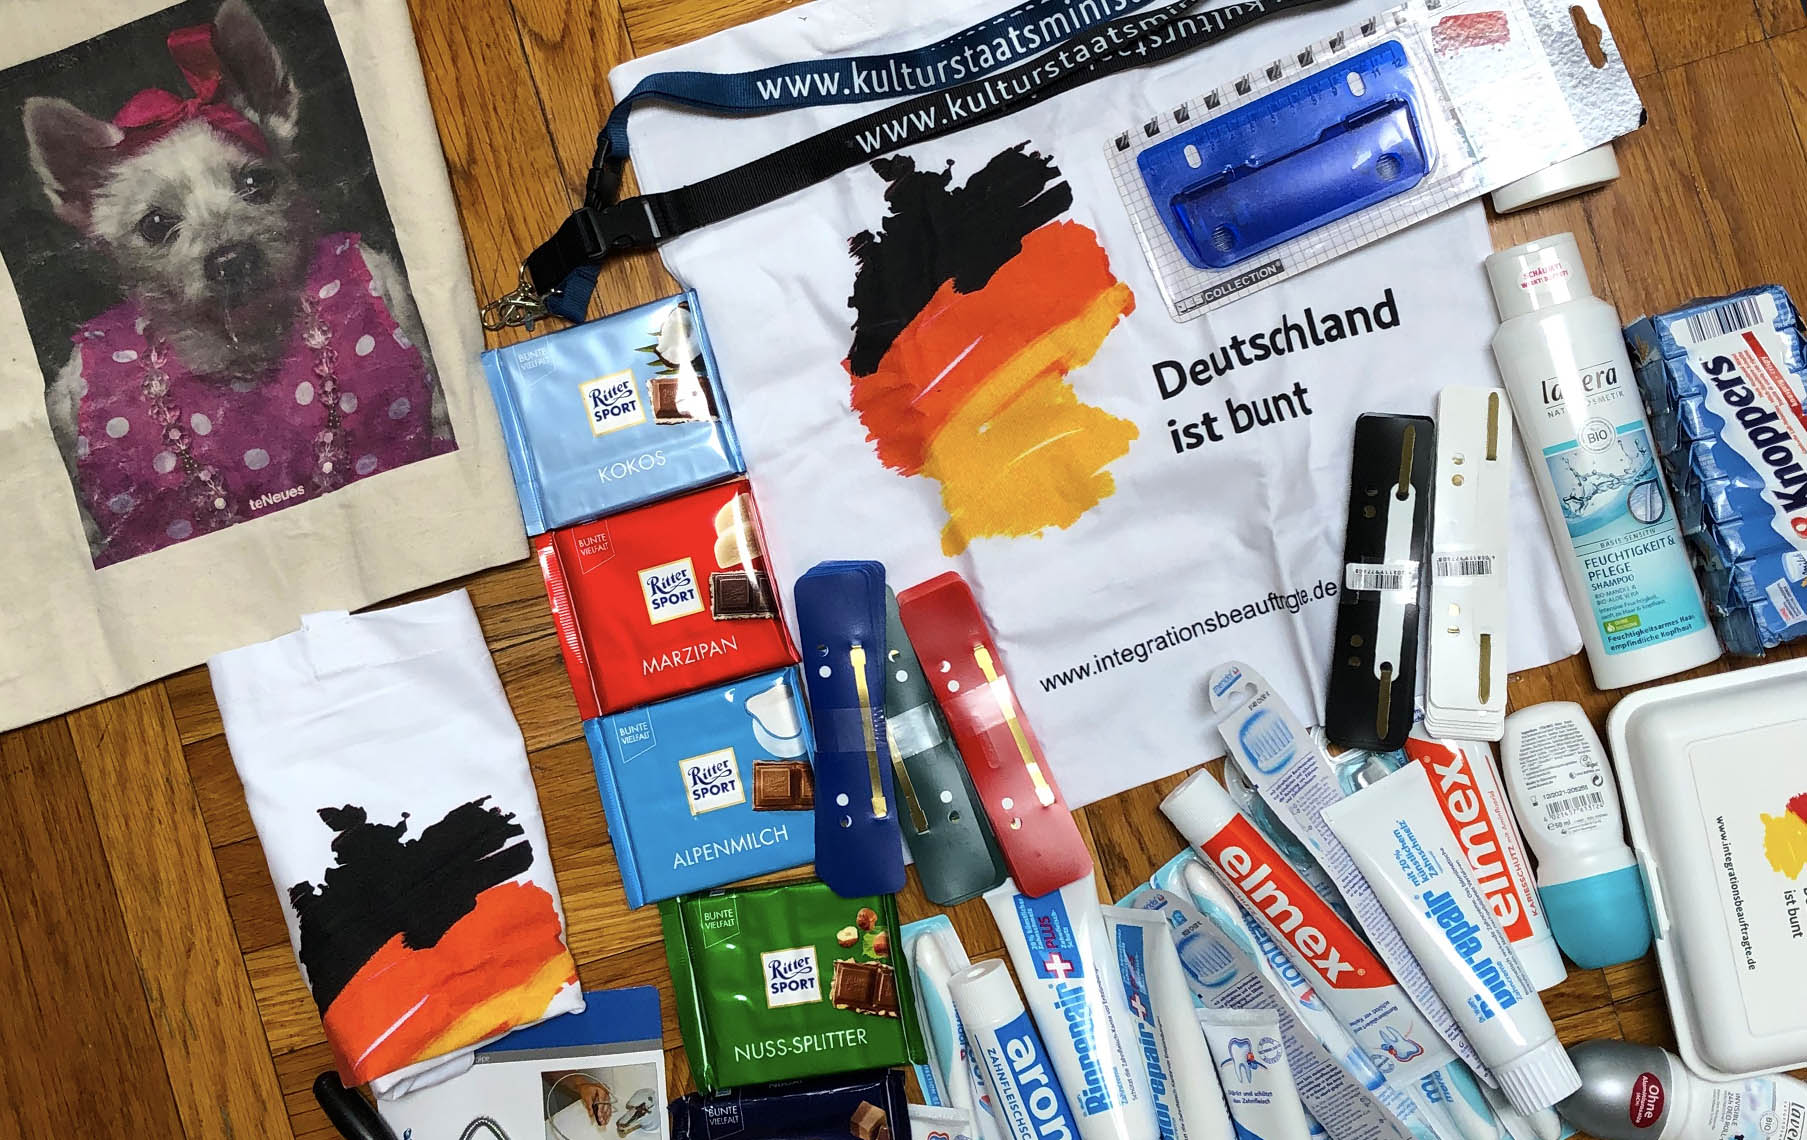 From Around the Web: 9 Awesome Finds Made in Germany